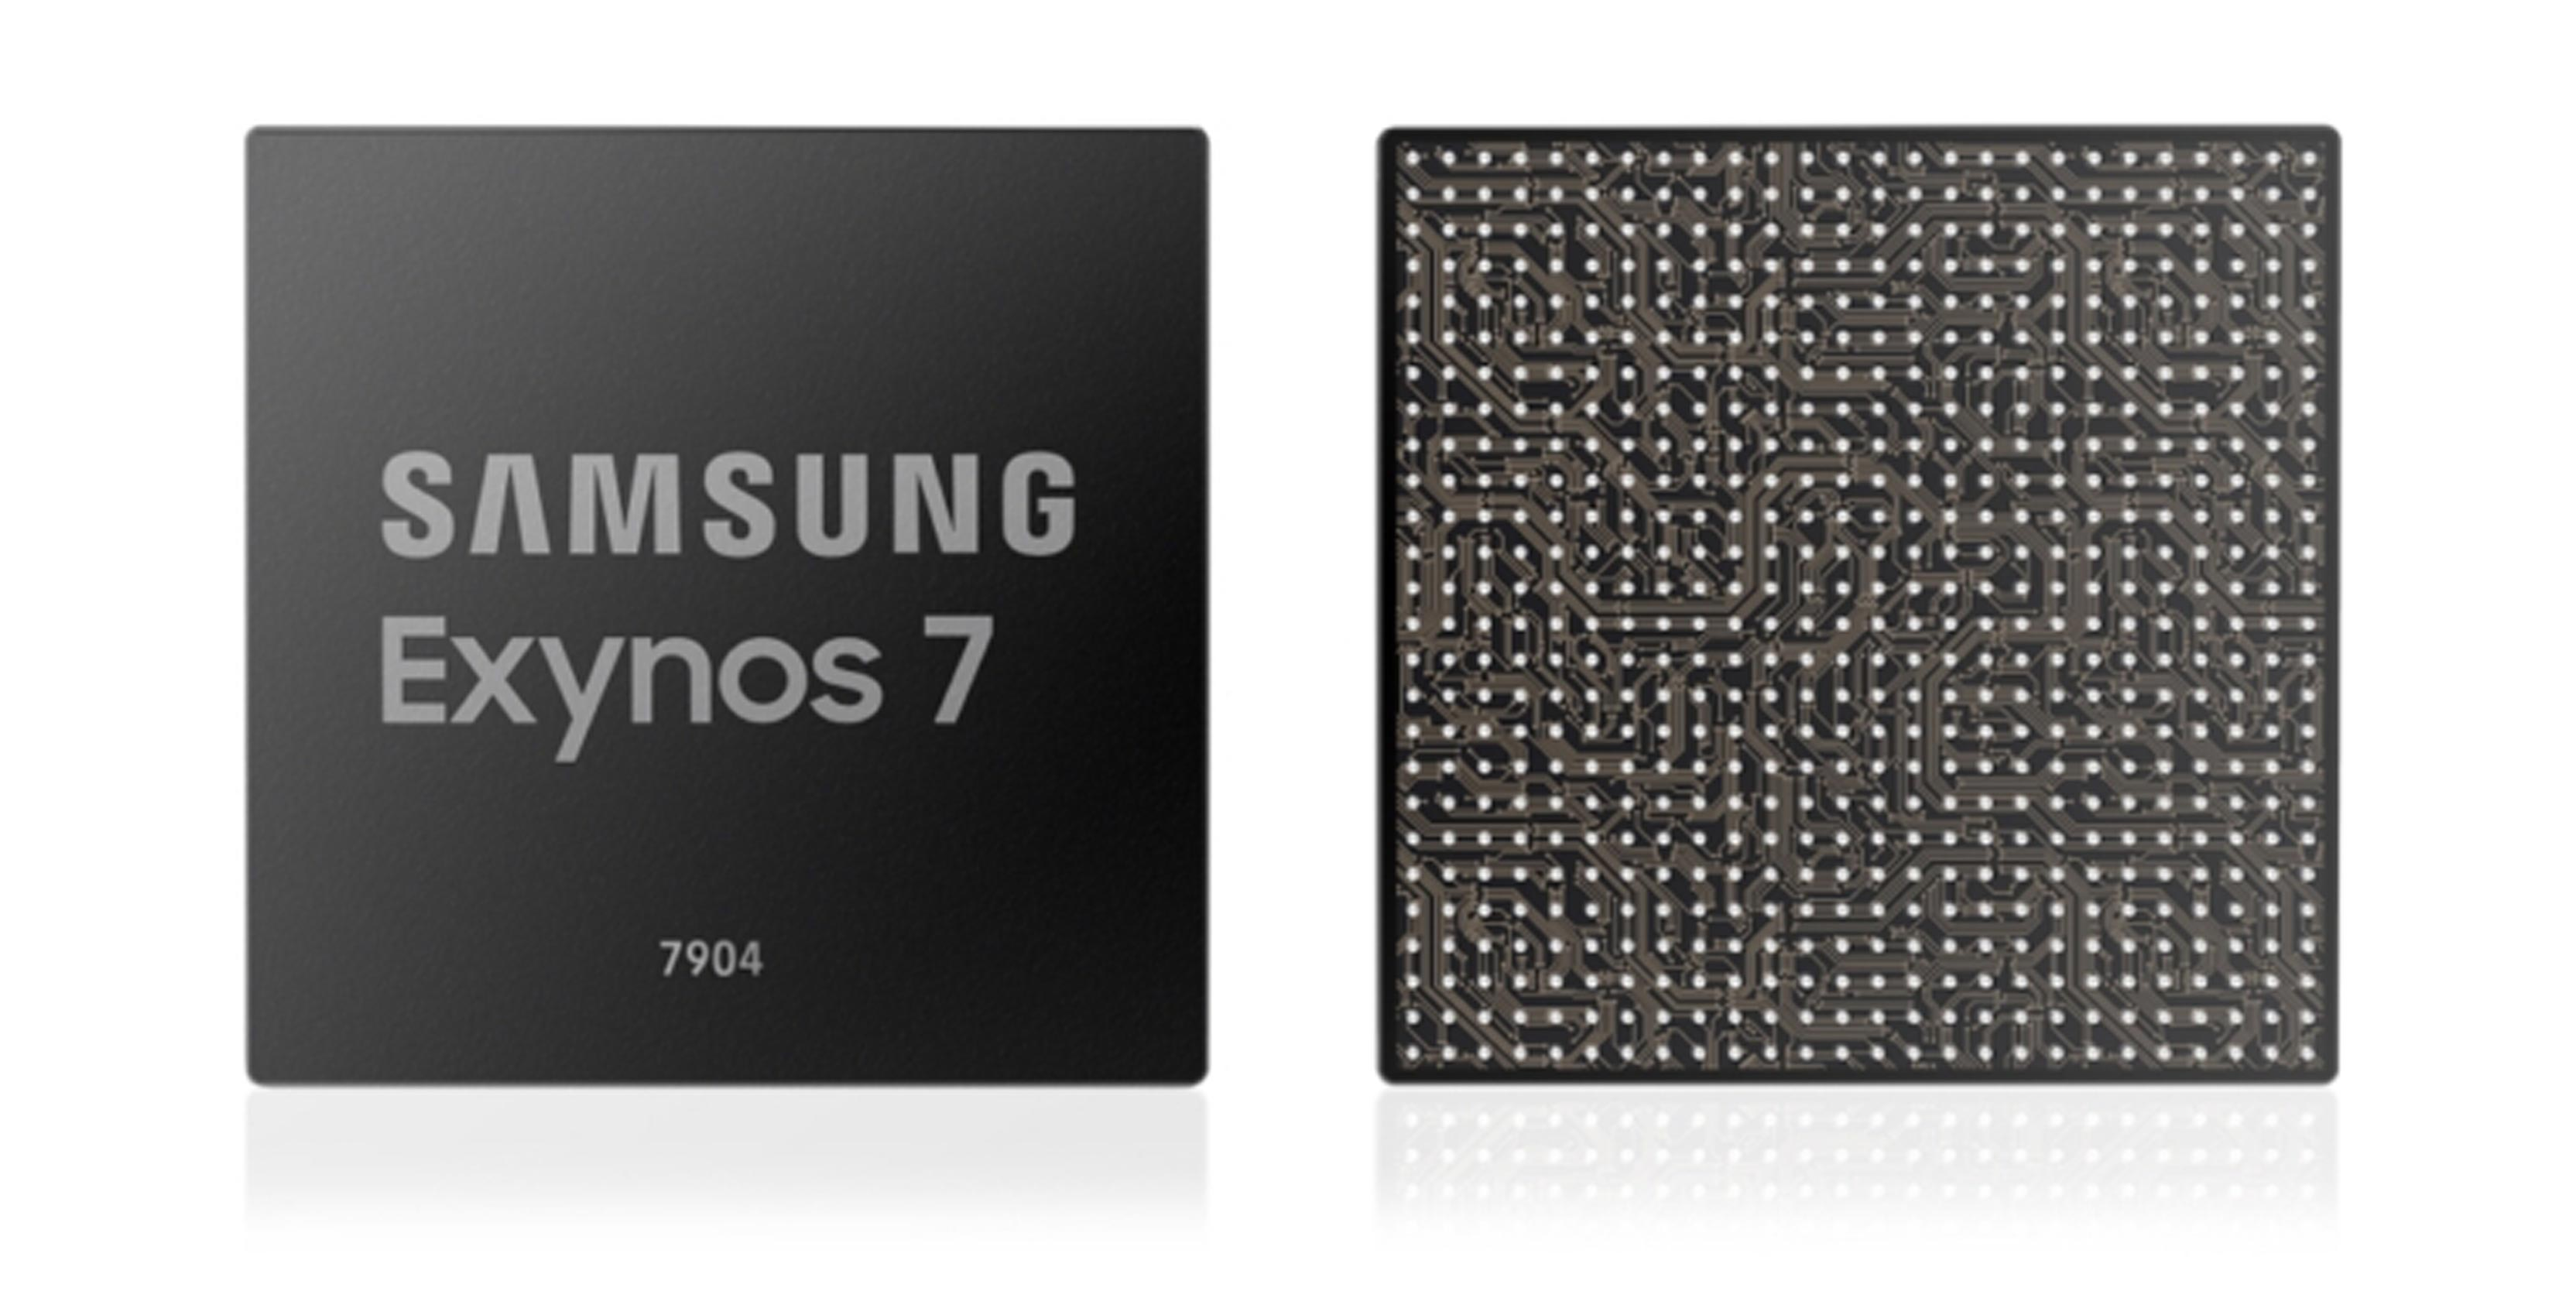 Samsung's new Exynos 7904 chipset